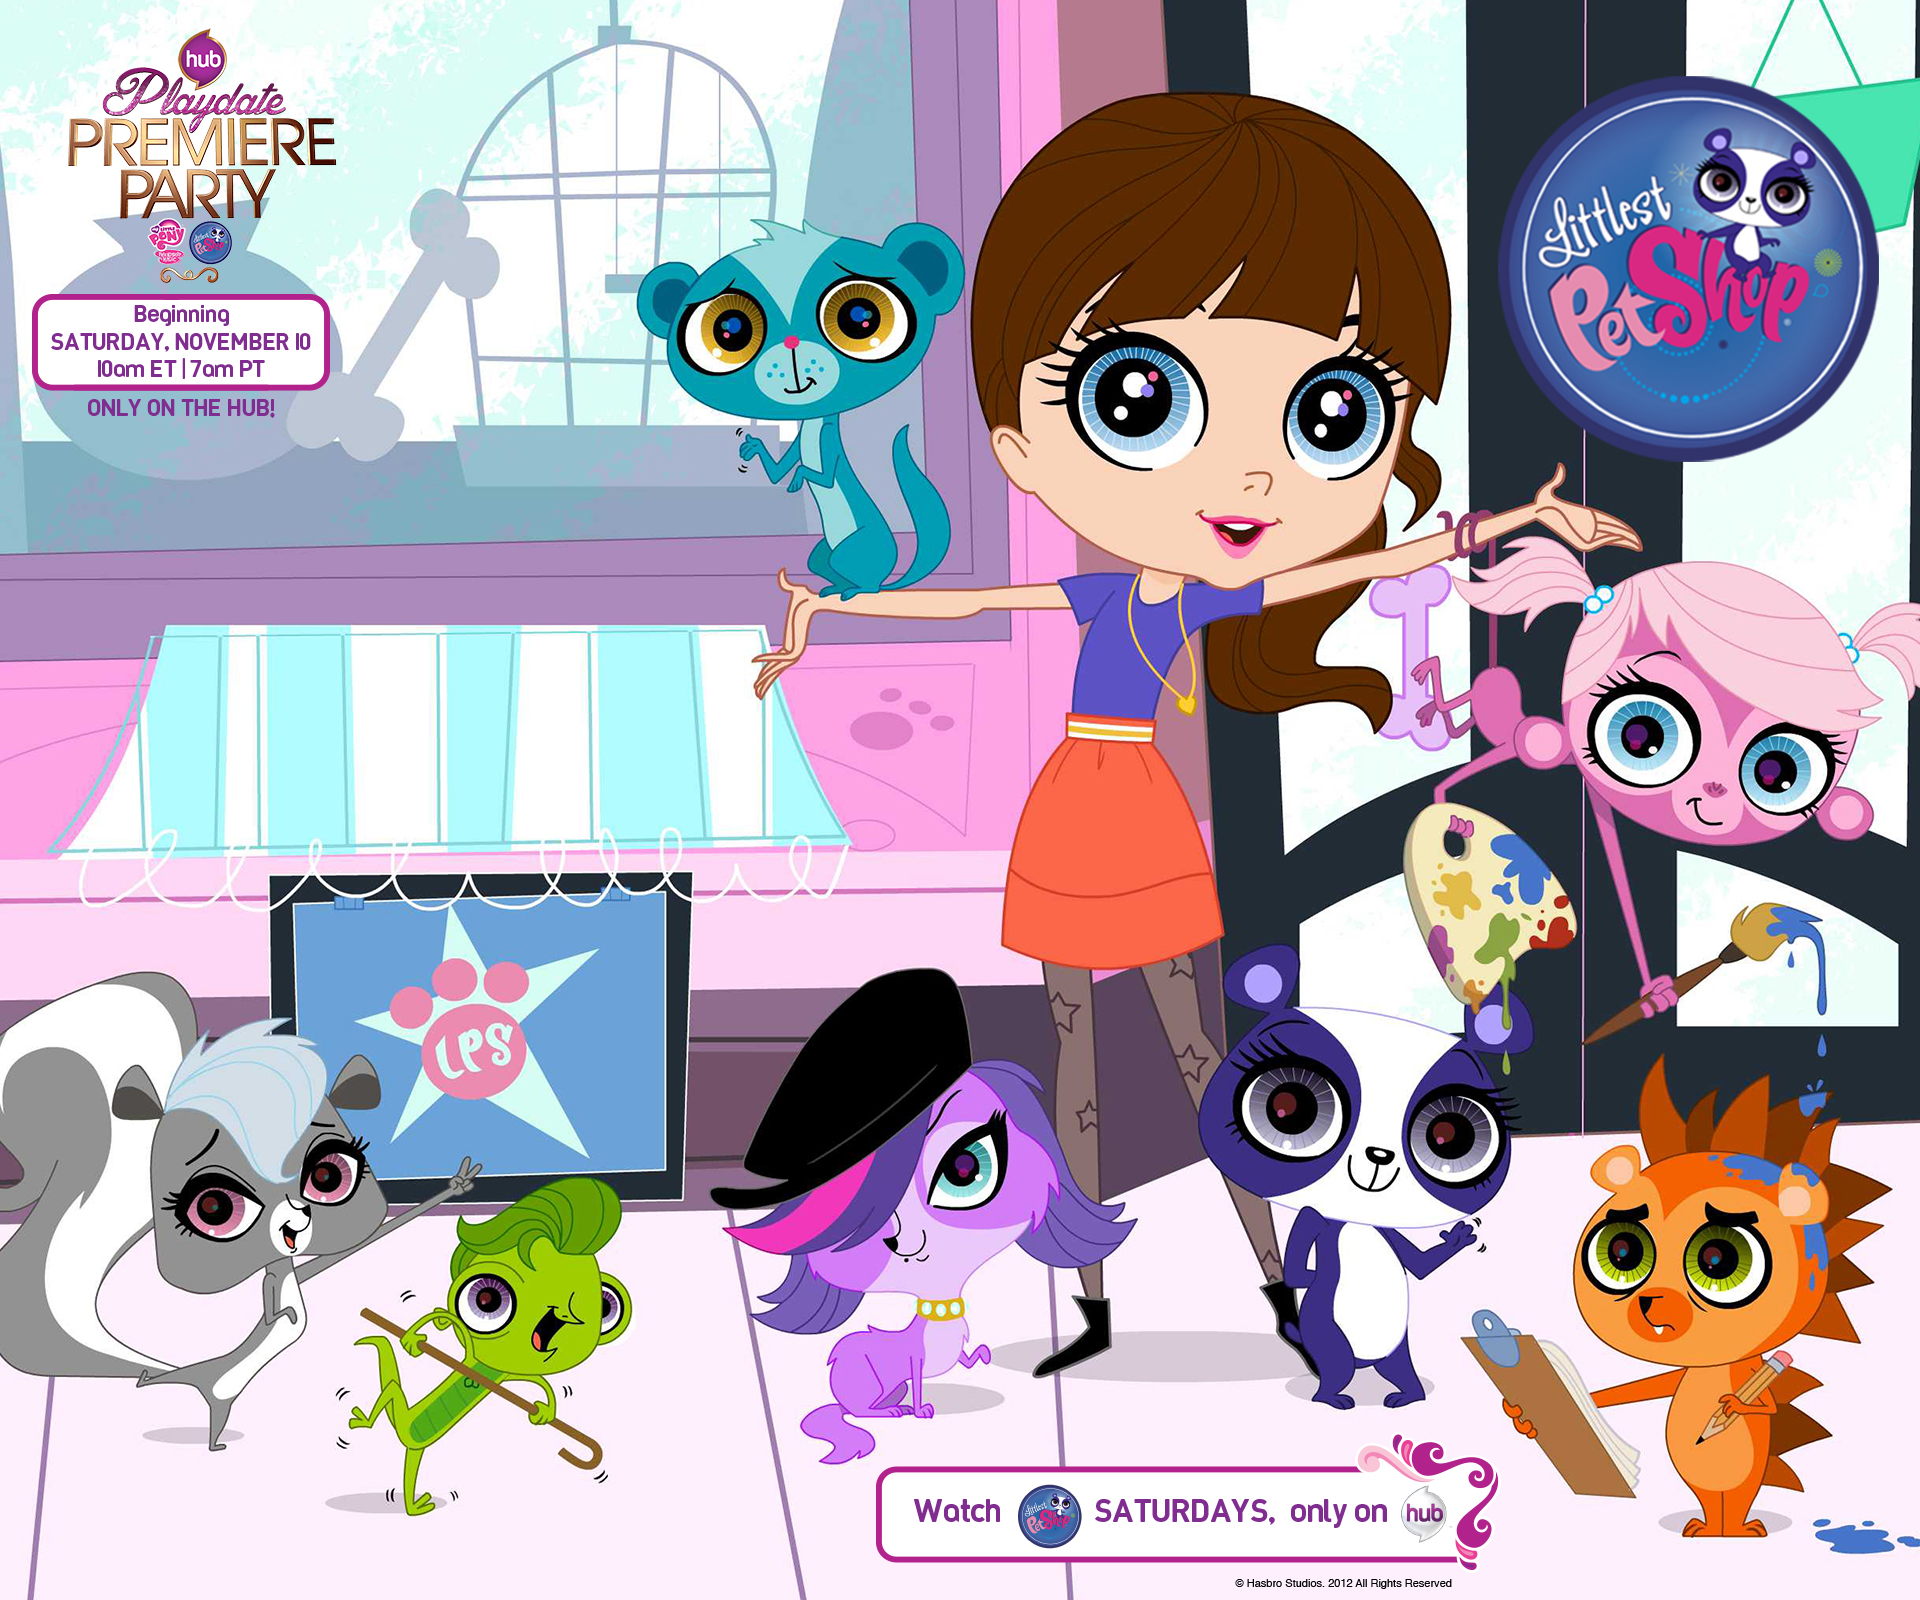 Littlest Pet Shop wallpaper on the Playdate Premiere Party on the Hub 1920x1600